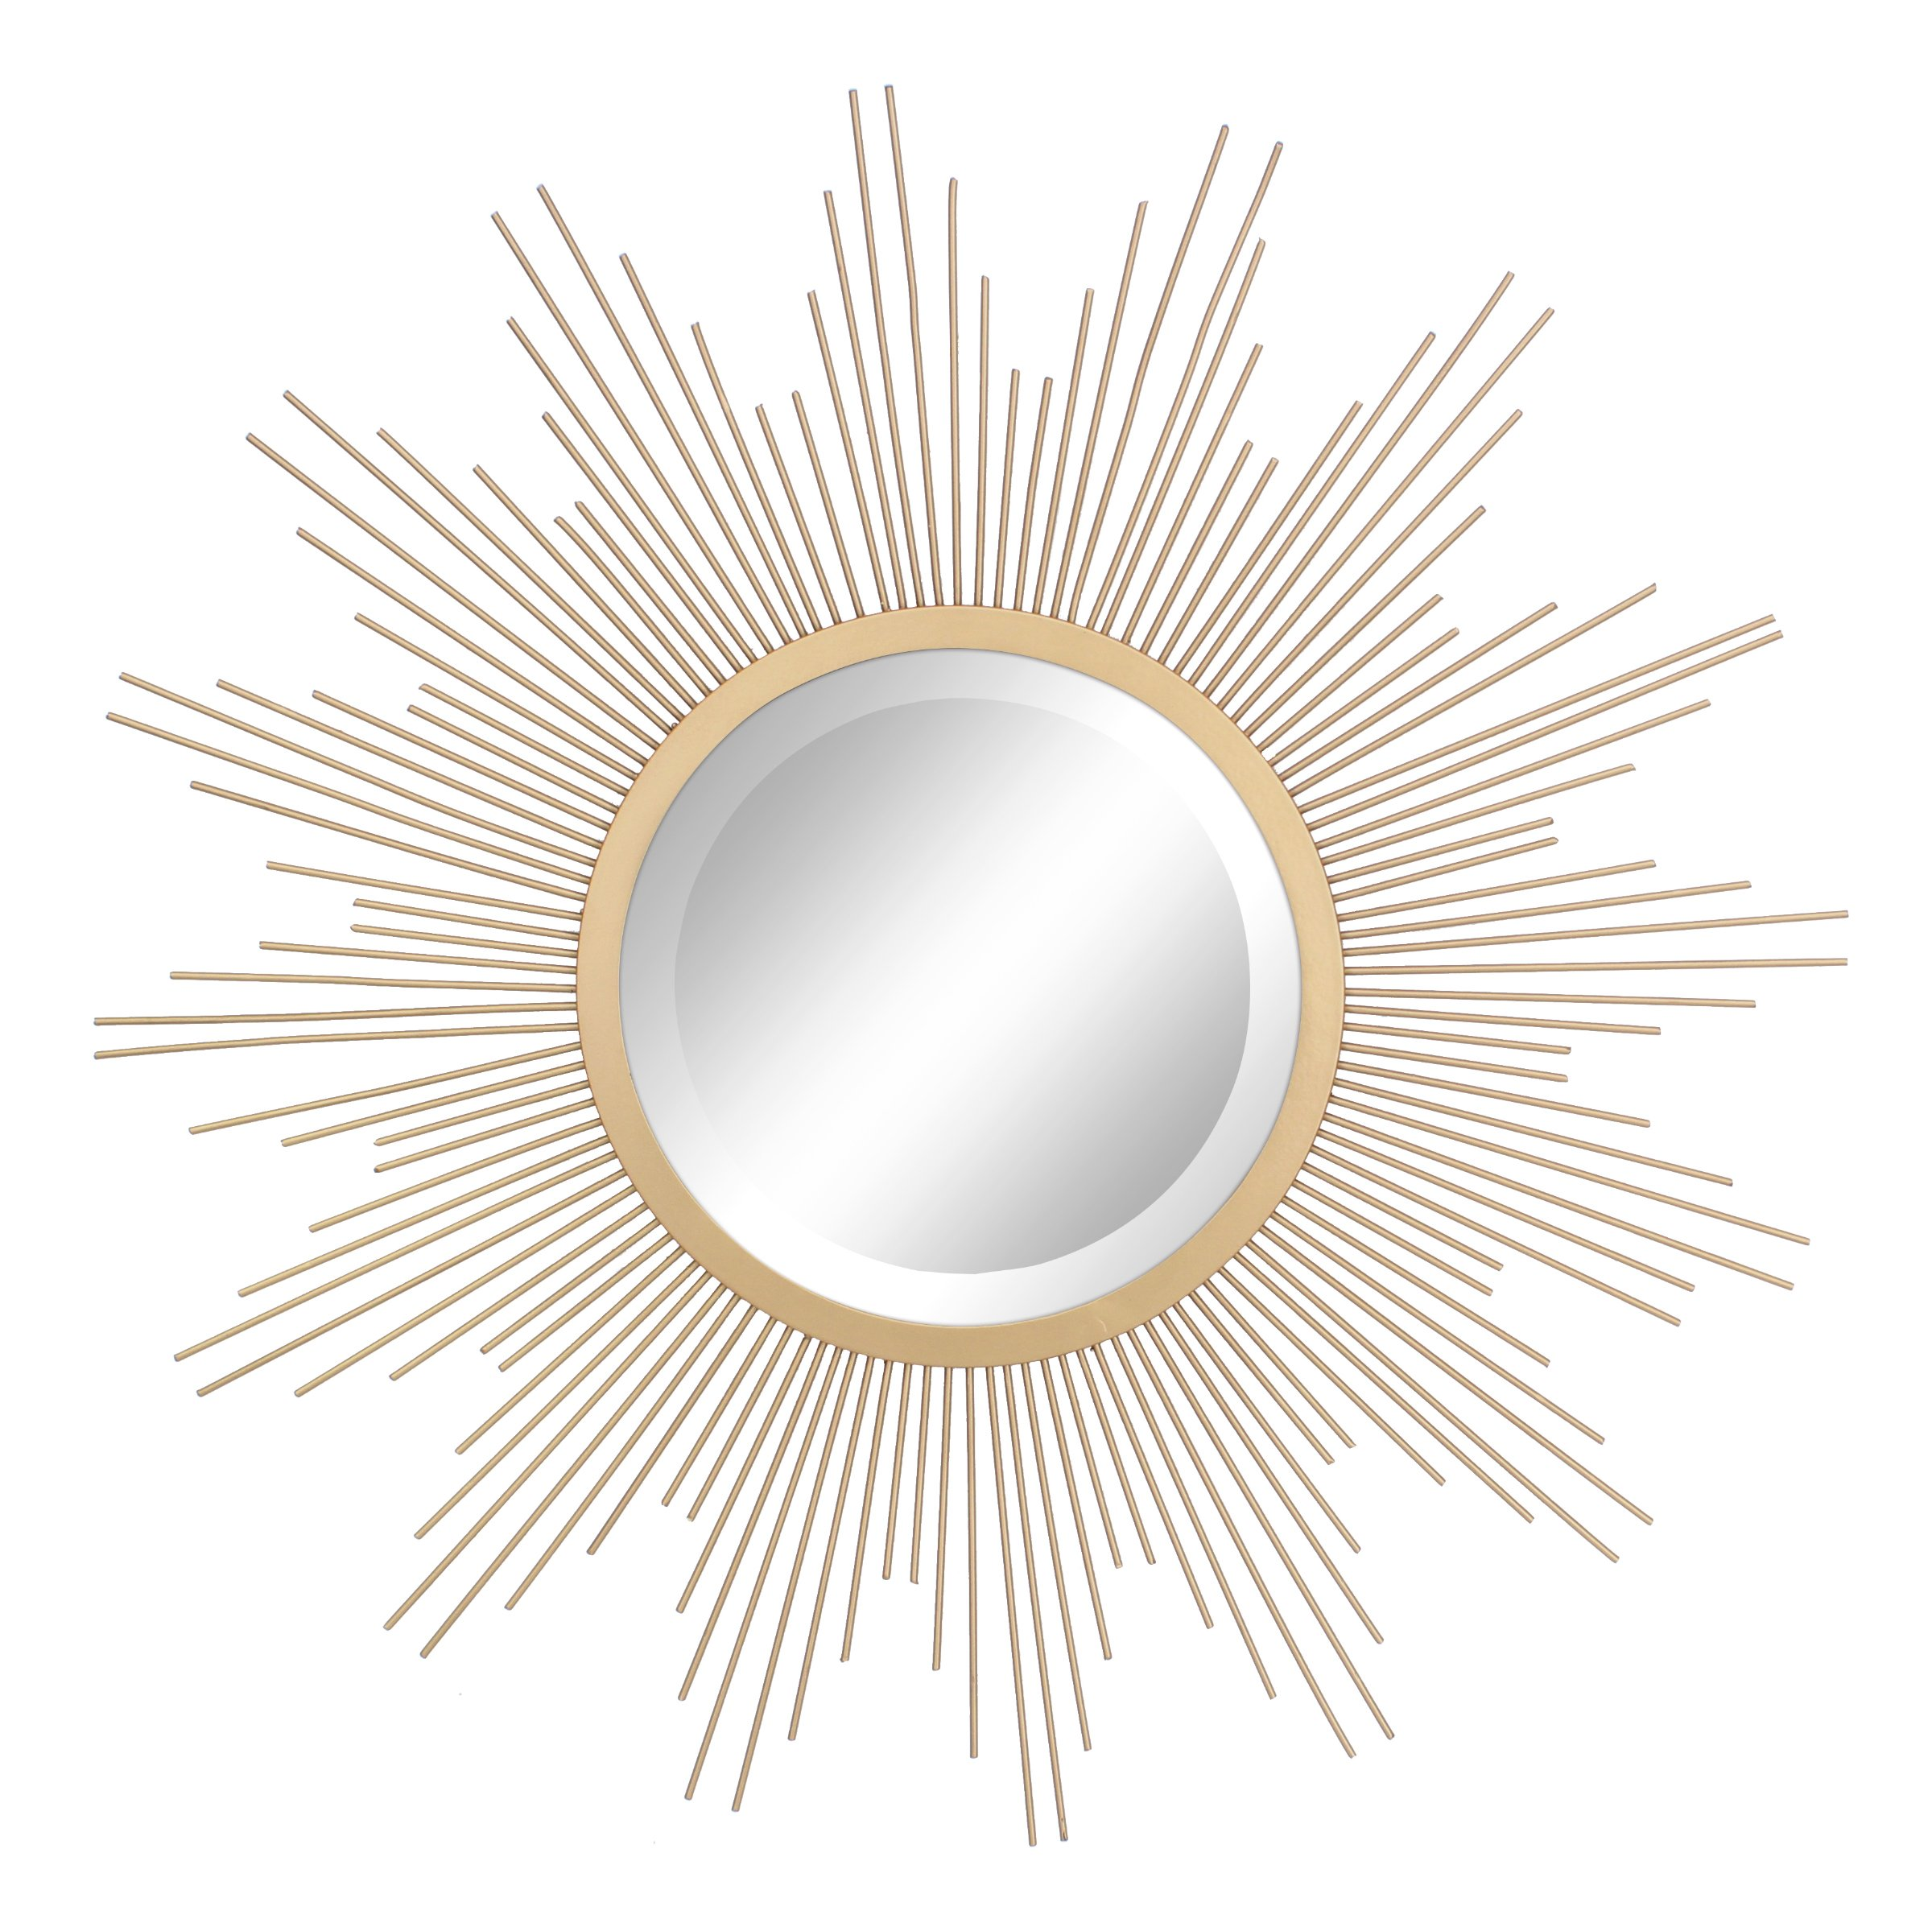 Stonebriar Round Decorative Antique Gold 24'' Metal Starburst Hanging Mirror for Wall, Modern Boho Decor for the Living Room, Bathroom, Bedroom, and Entryway